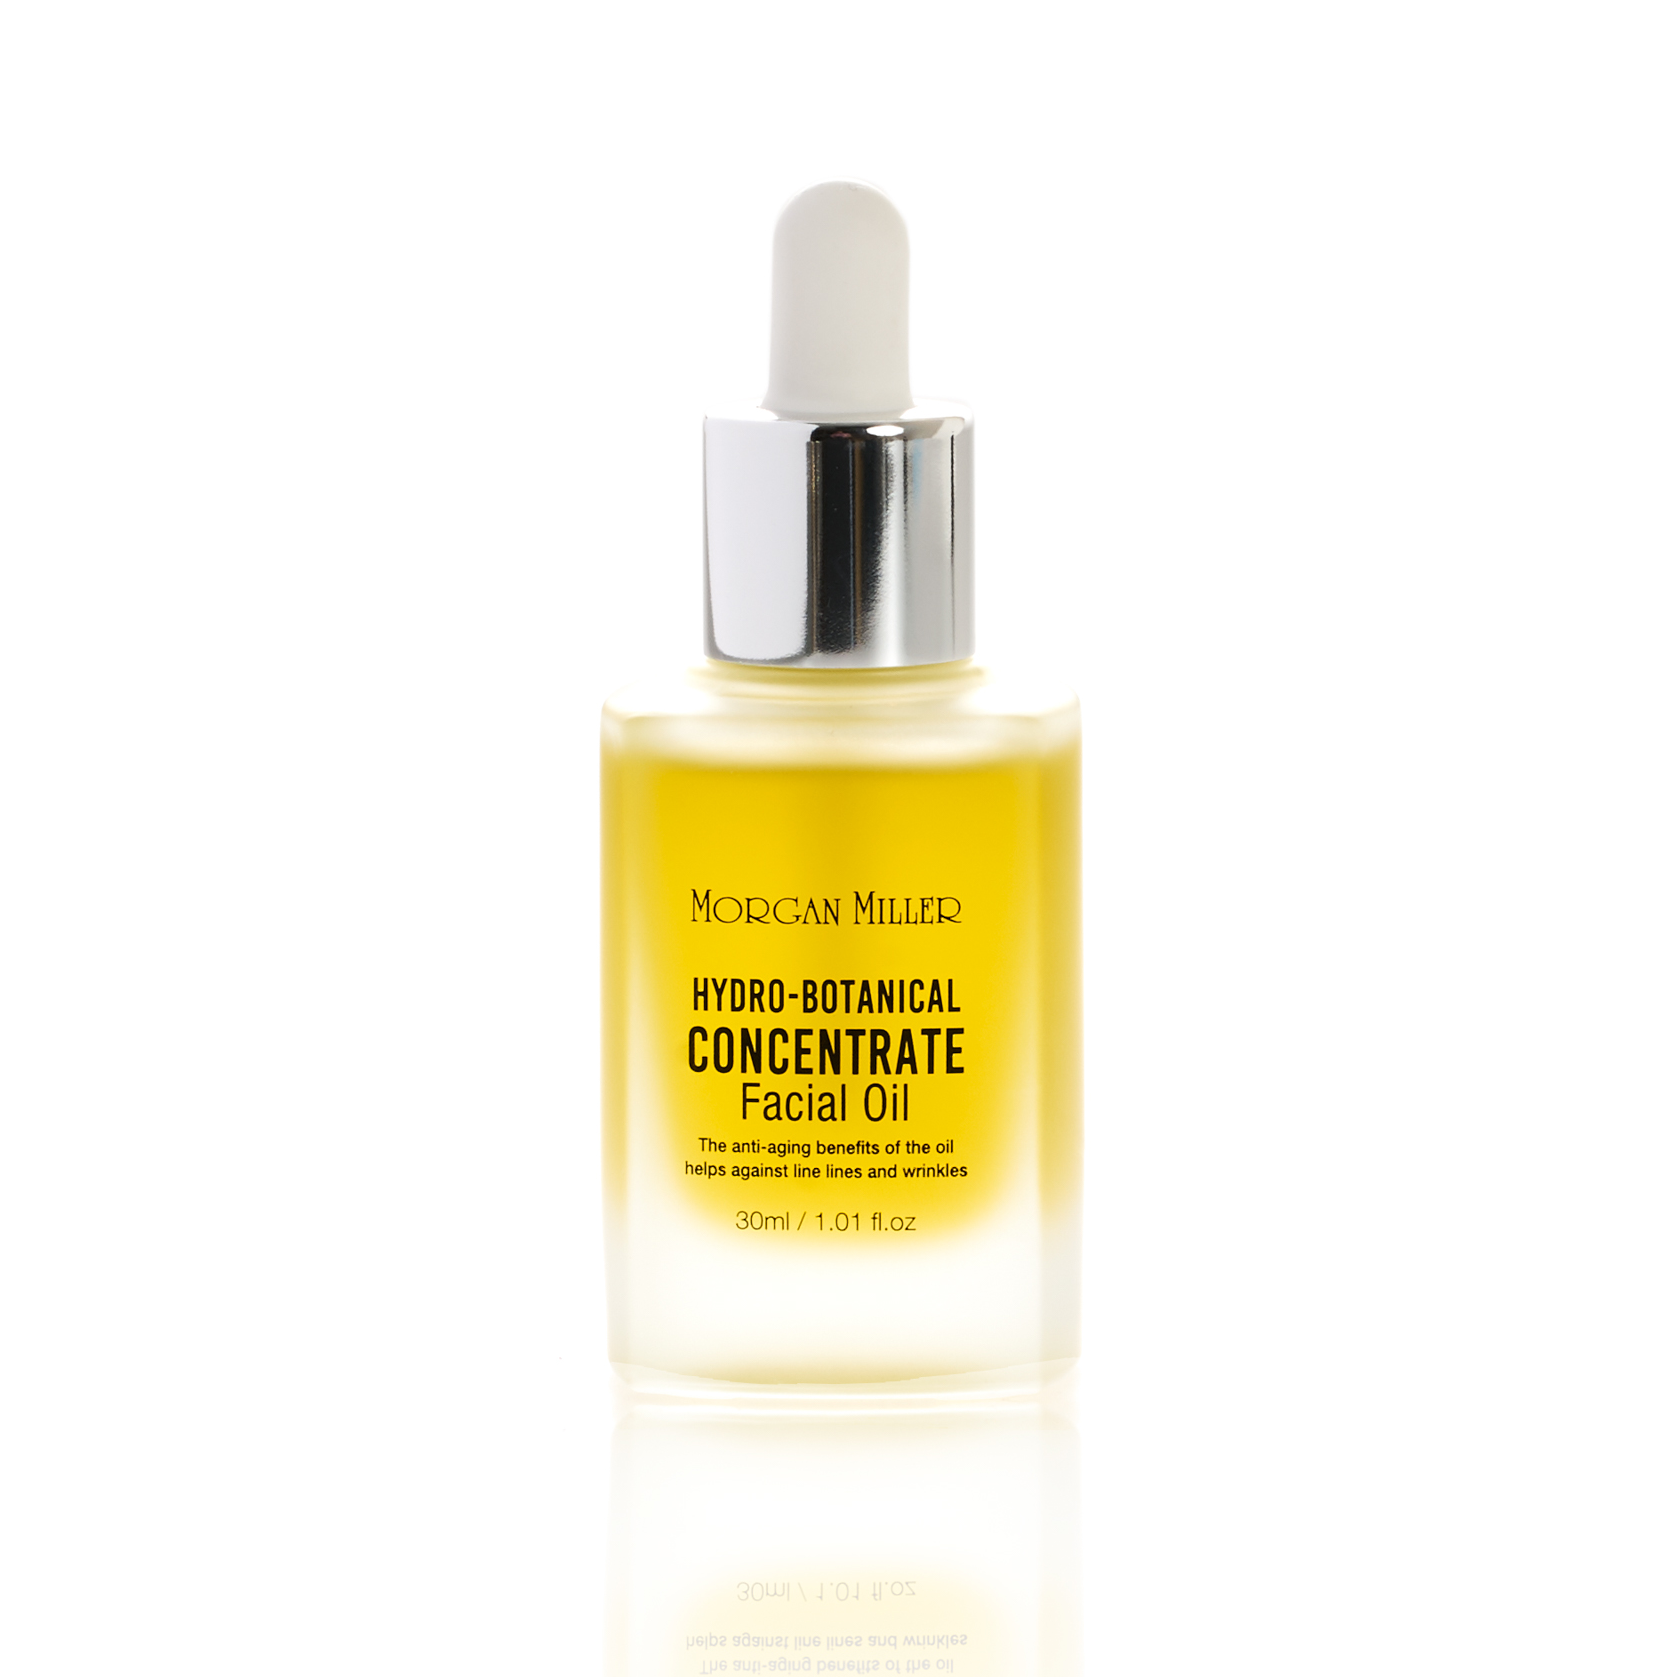 Morgan Miller Hydro-Botanical Concentrate Facail Oil